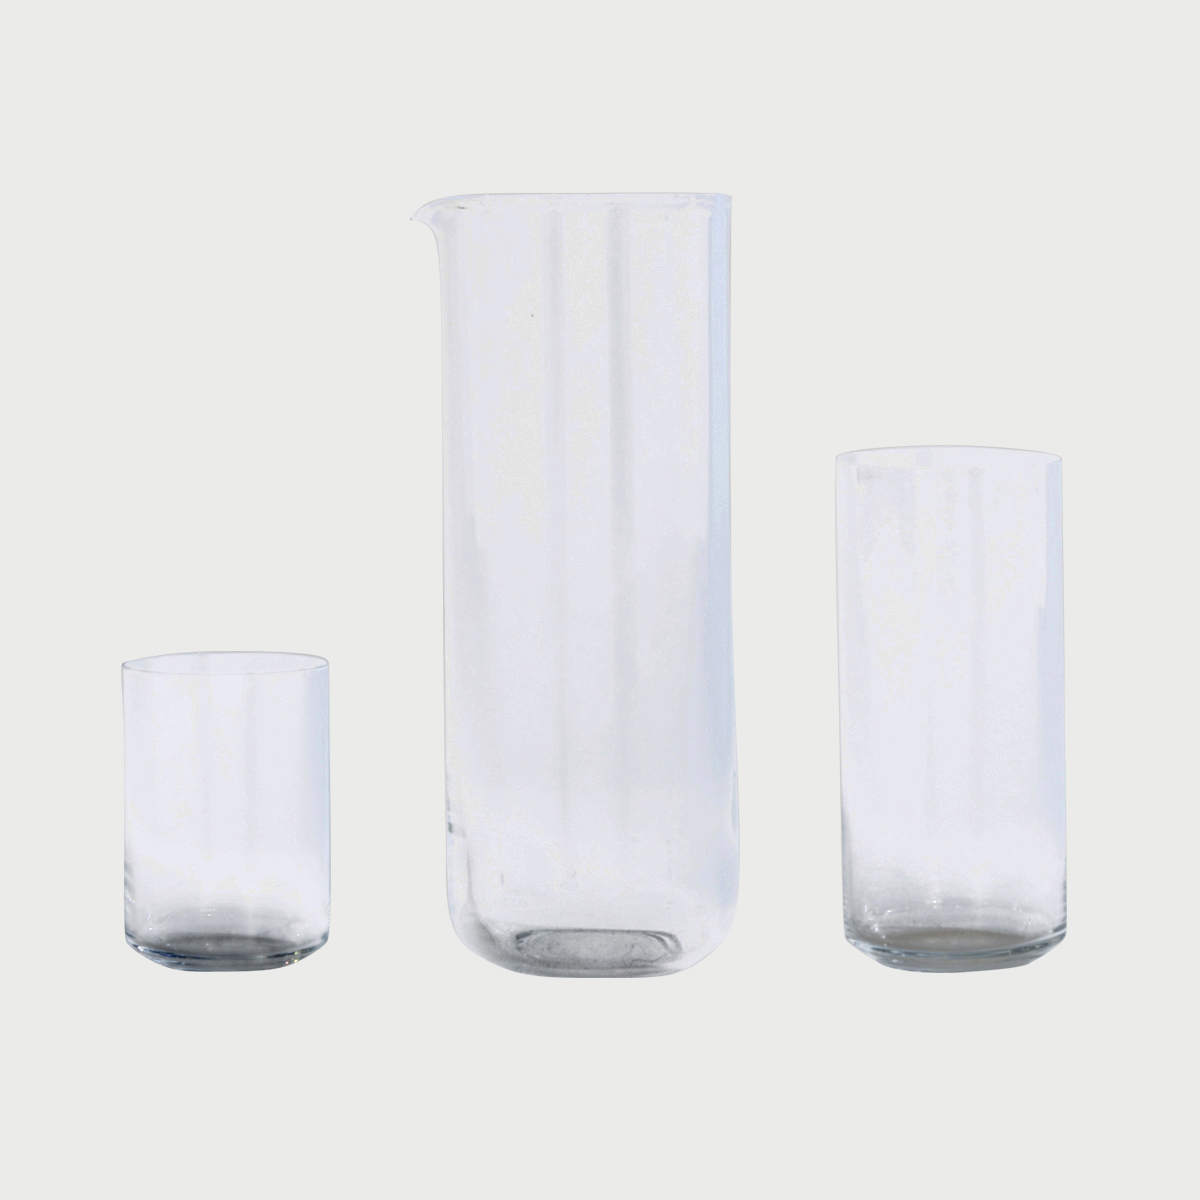 Simple glass ware